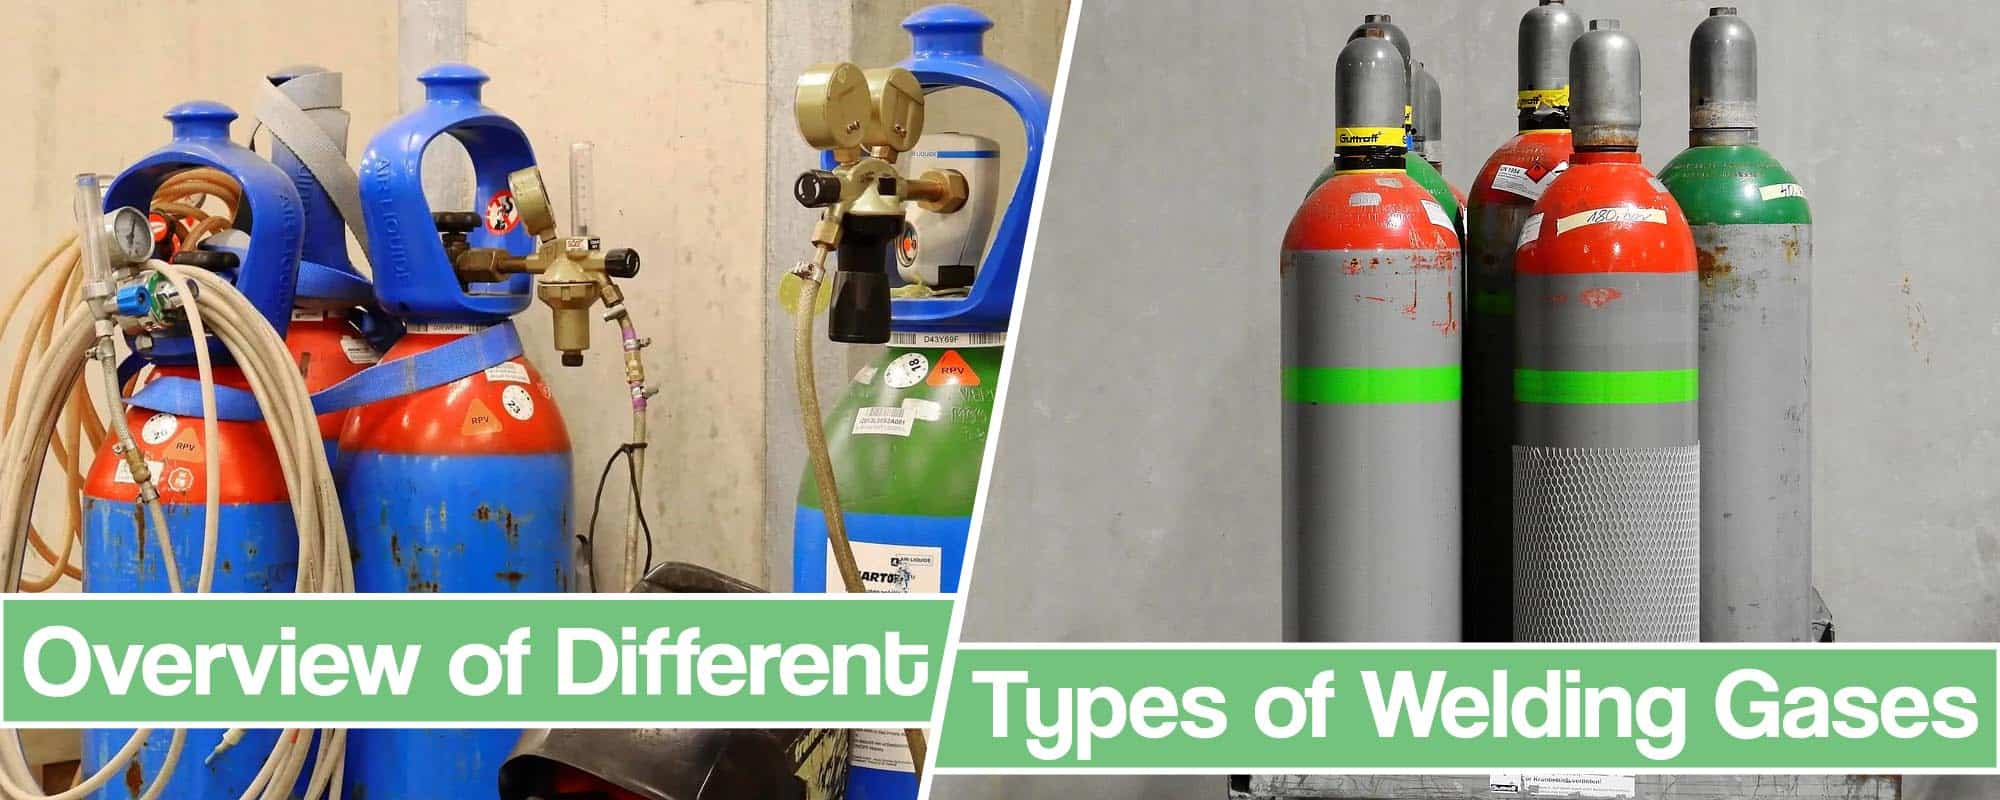 Feature image for Different Types of Welding Gases article